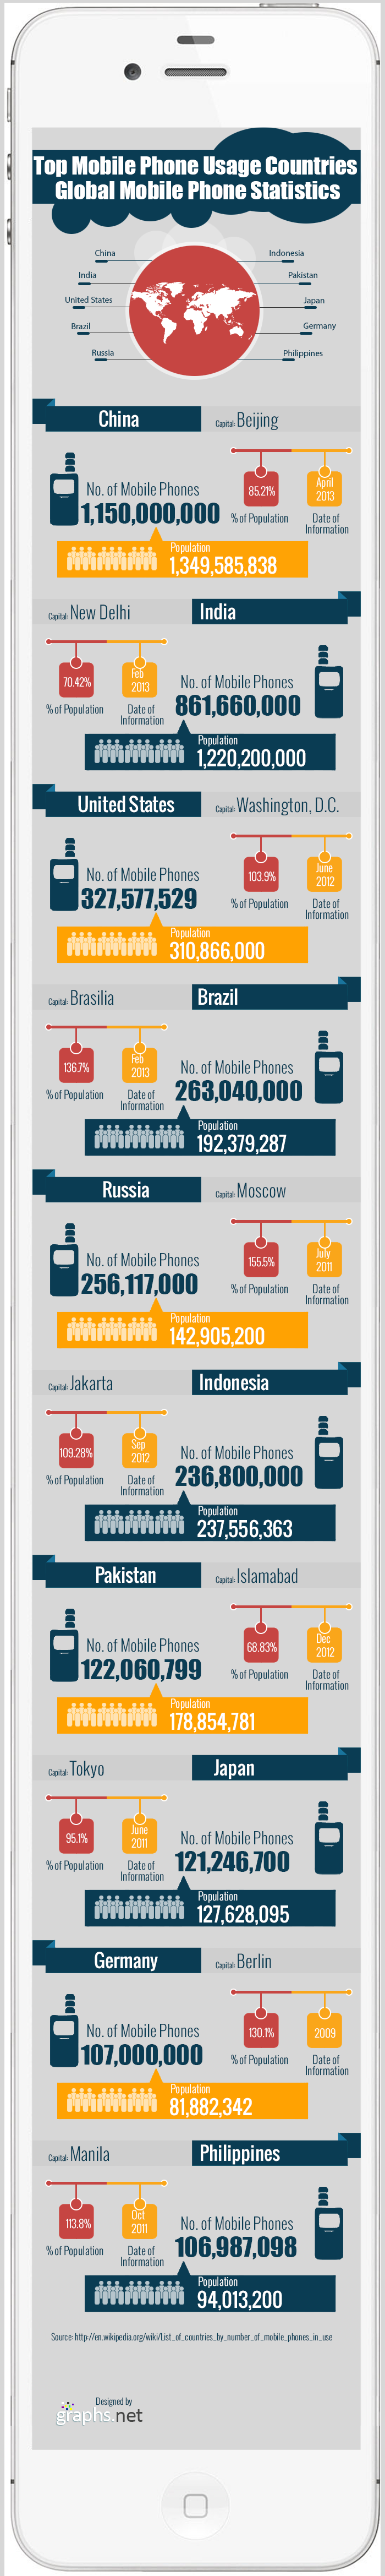 World's leading countries with highest mobile phone users